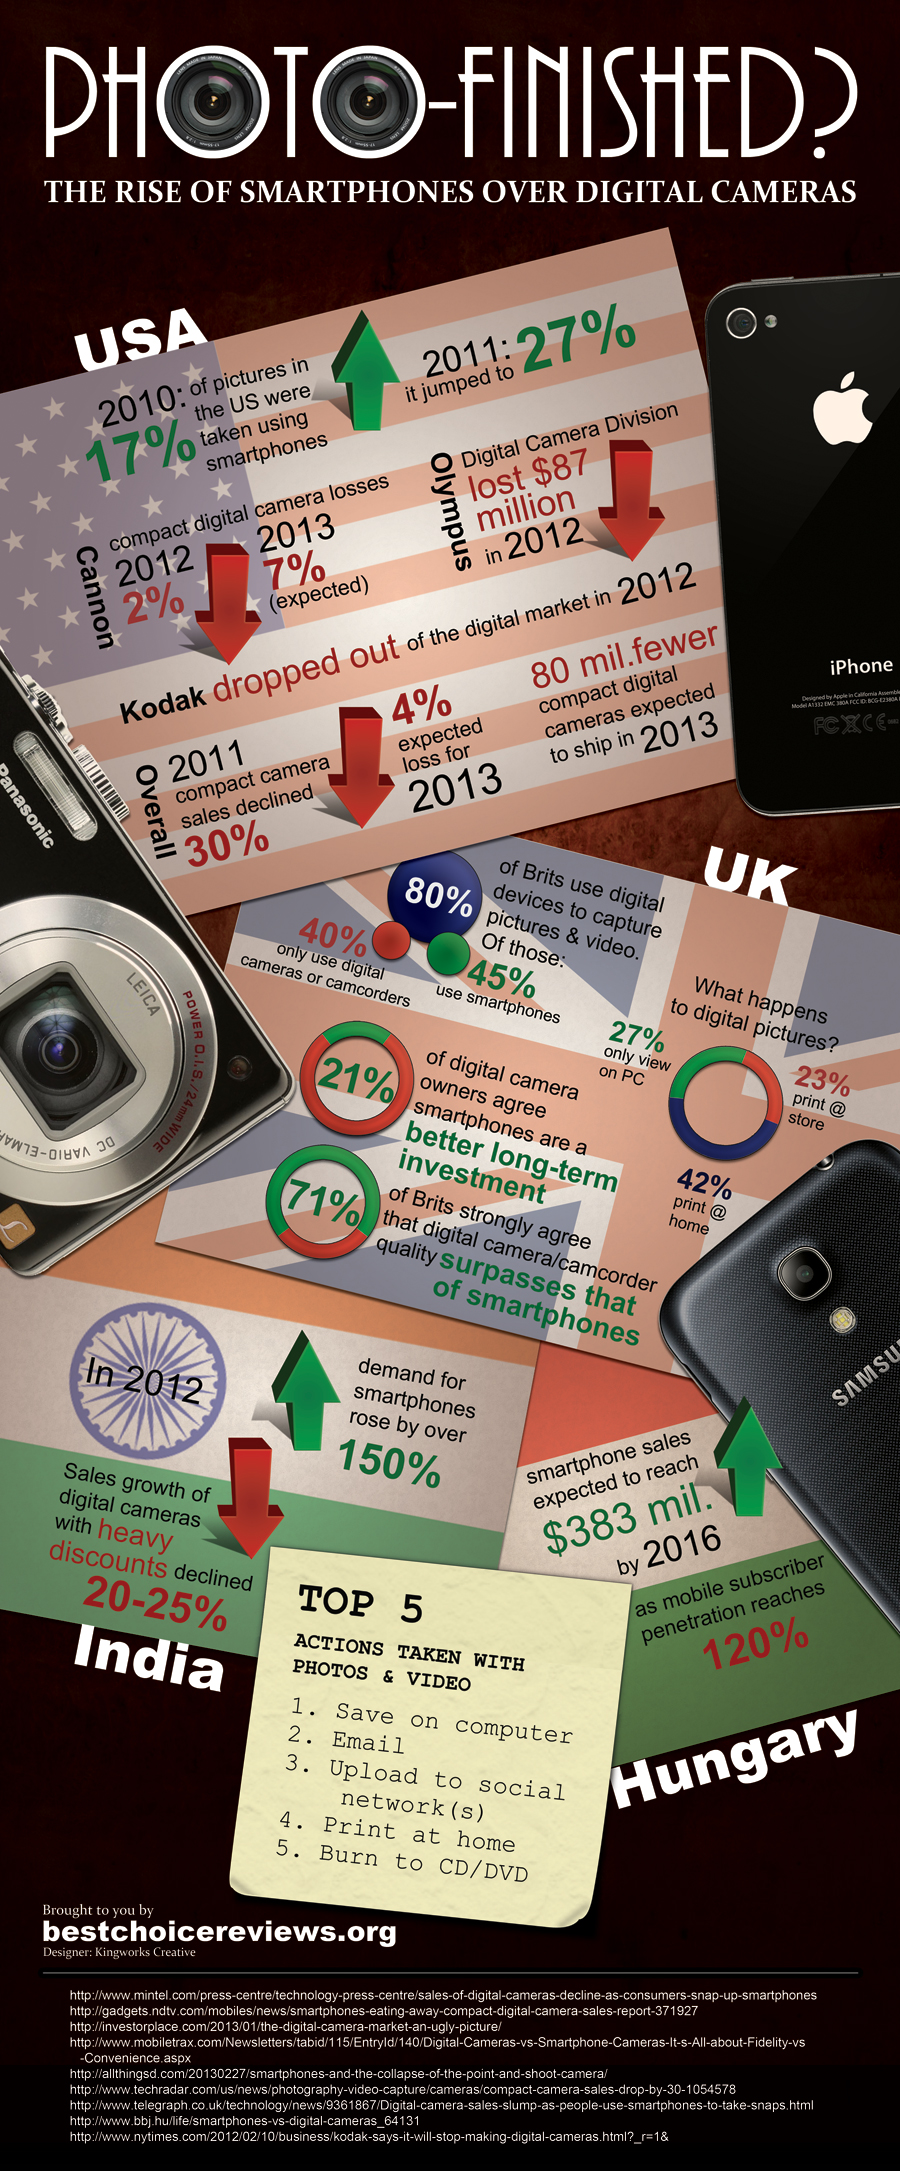 The Rise of Smartphones Over Digital Cameras